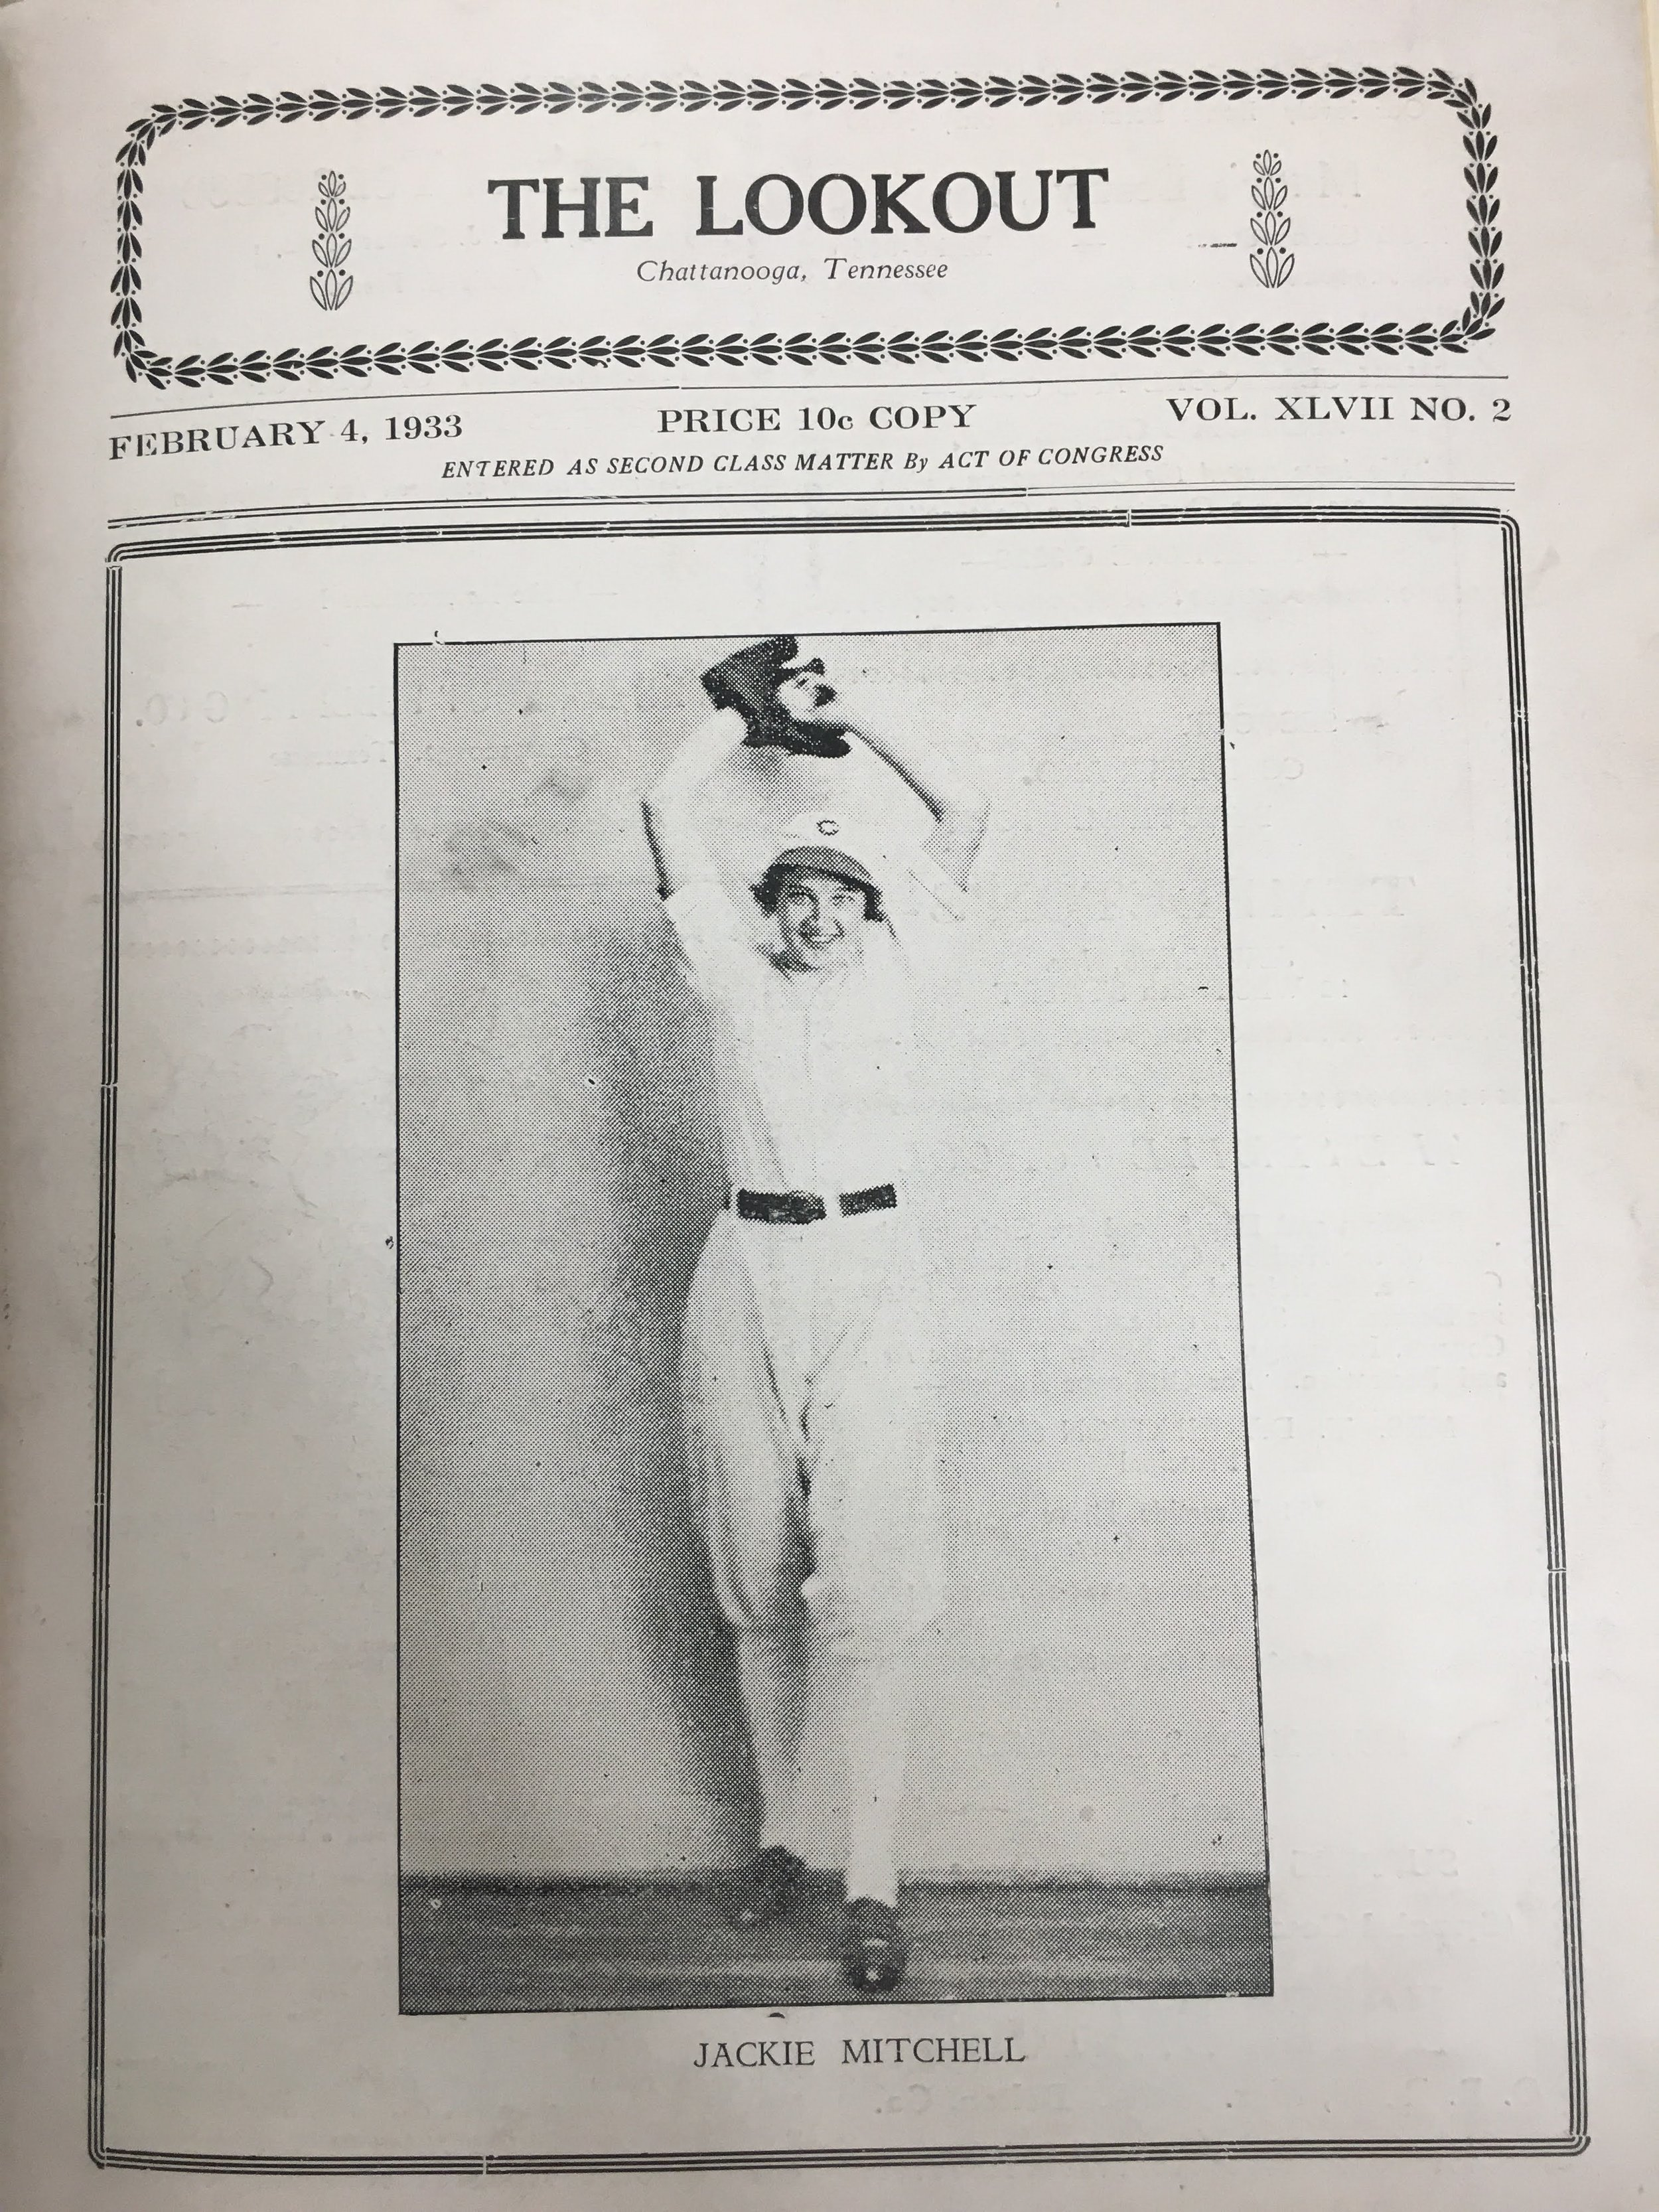 Jackie Mitchell poses for a photograph on the cover of the magazine The Lookout in February 1933. (Chattanooga Public Library archives)